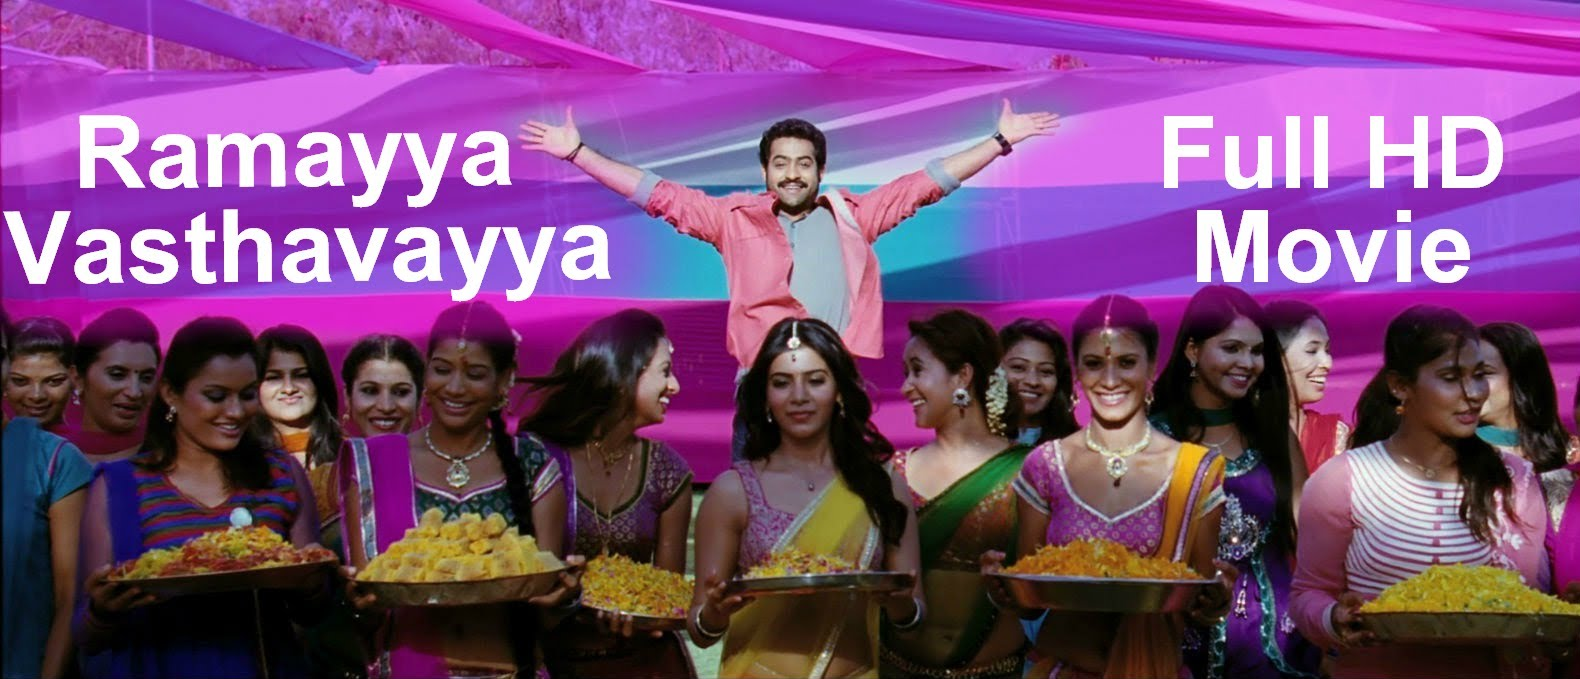 ramayya vasthavayya full movie hd - ntr,samantha, dil raju & harish